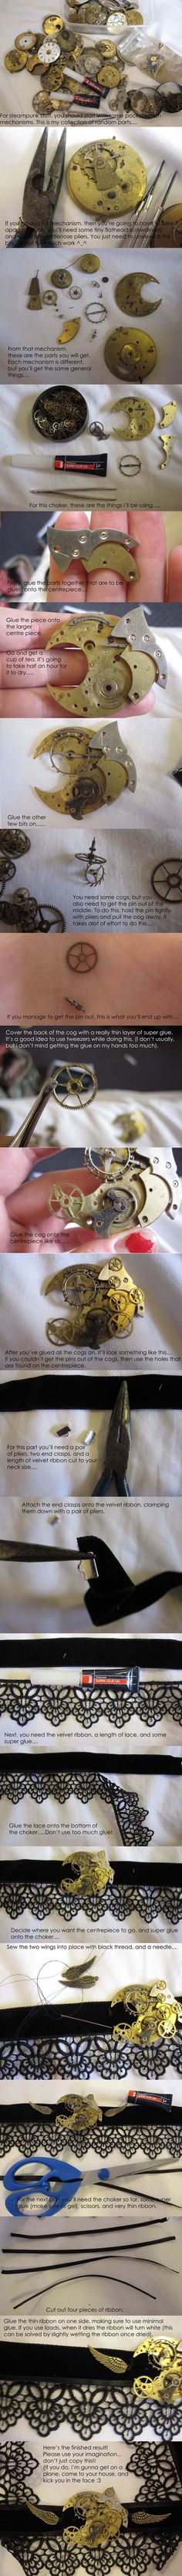 Steampunk jewellery tutorial